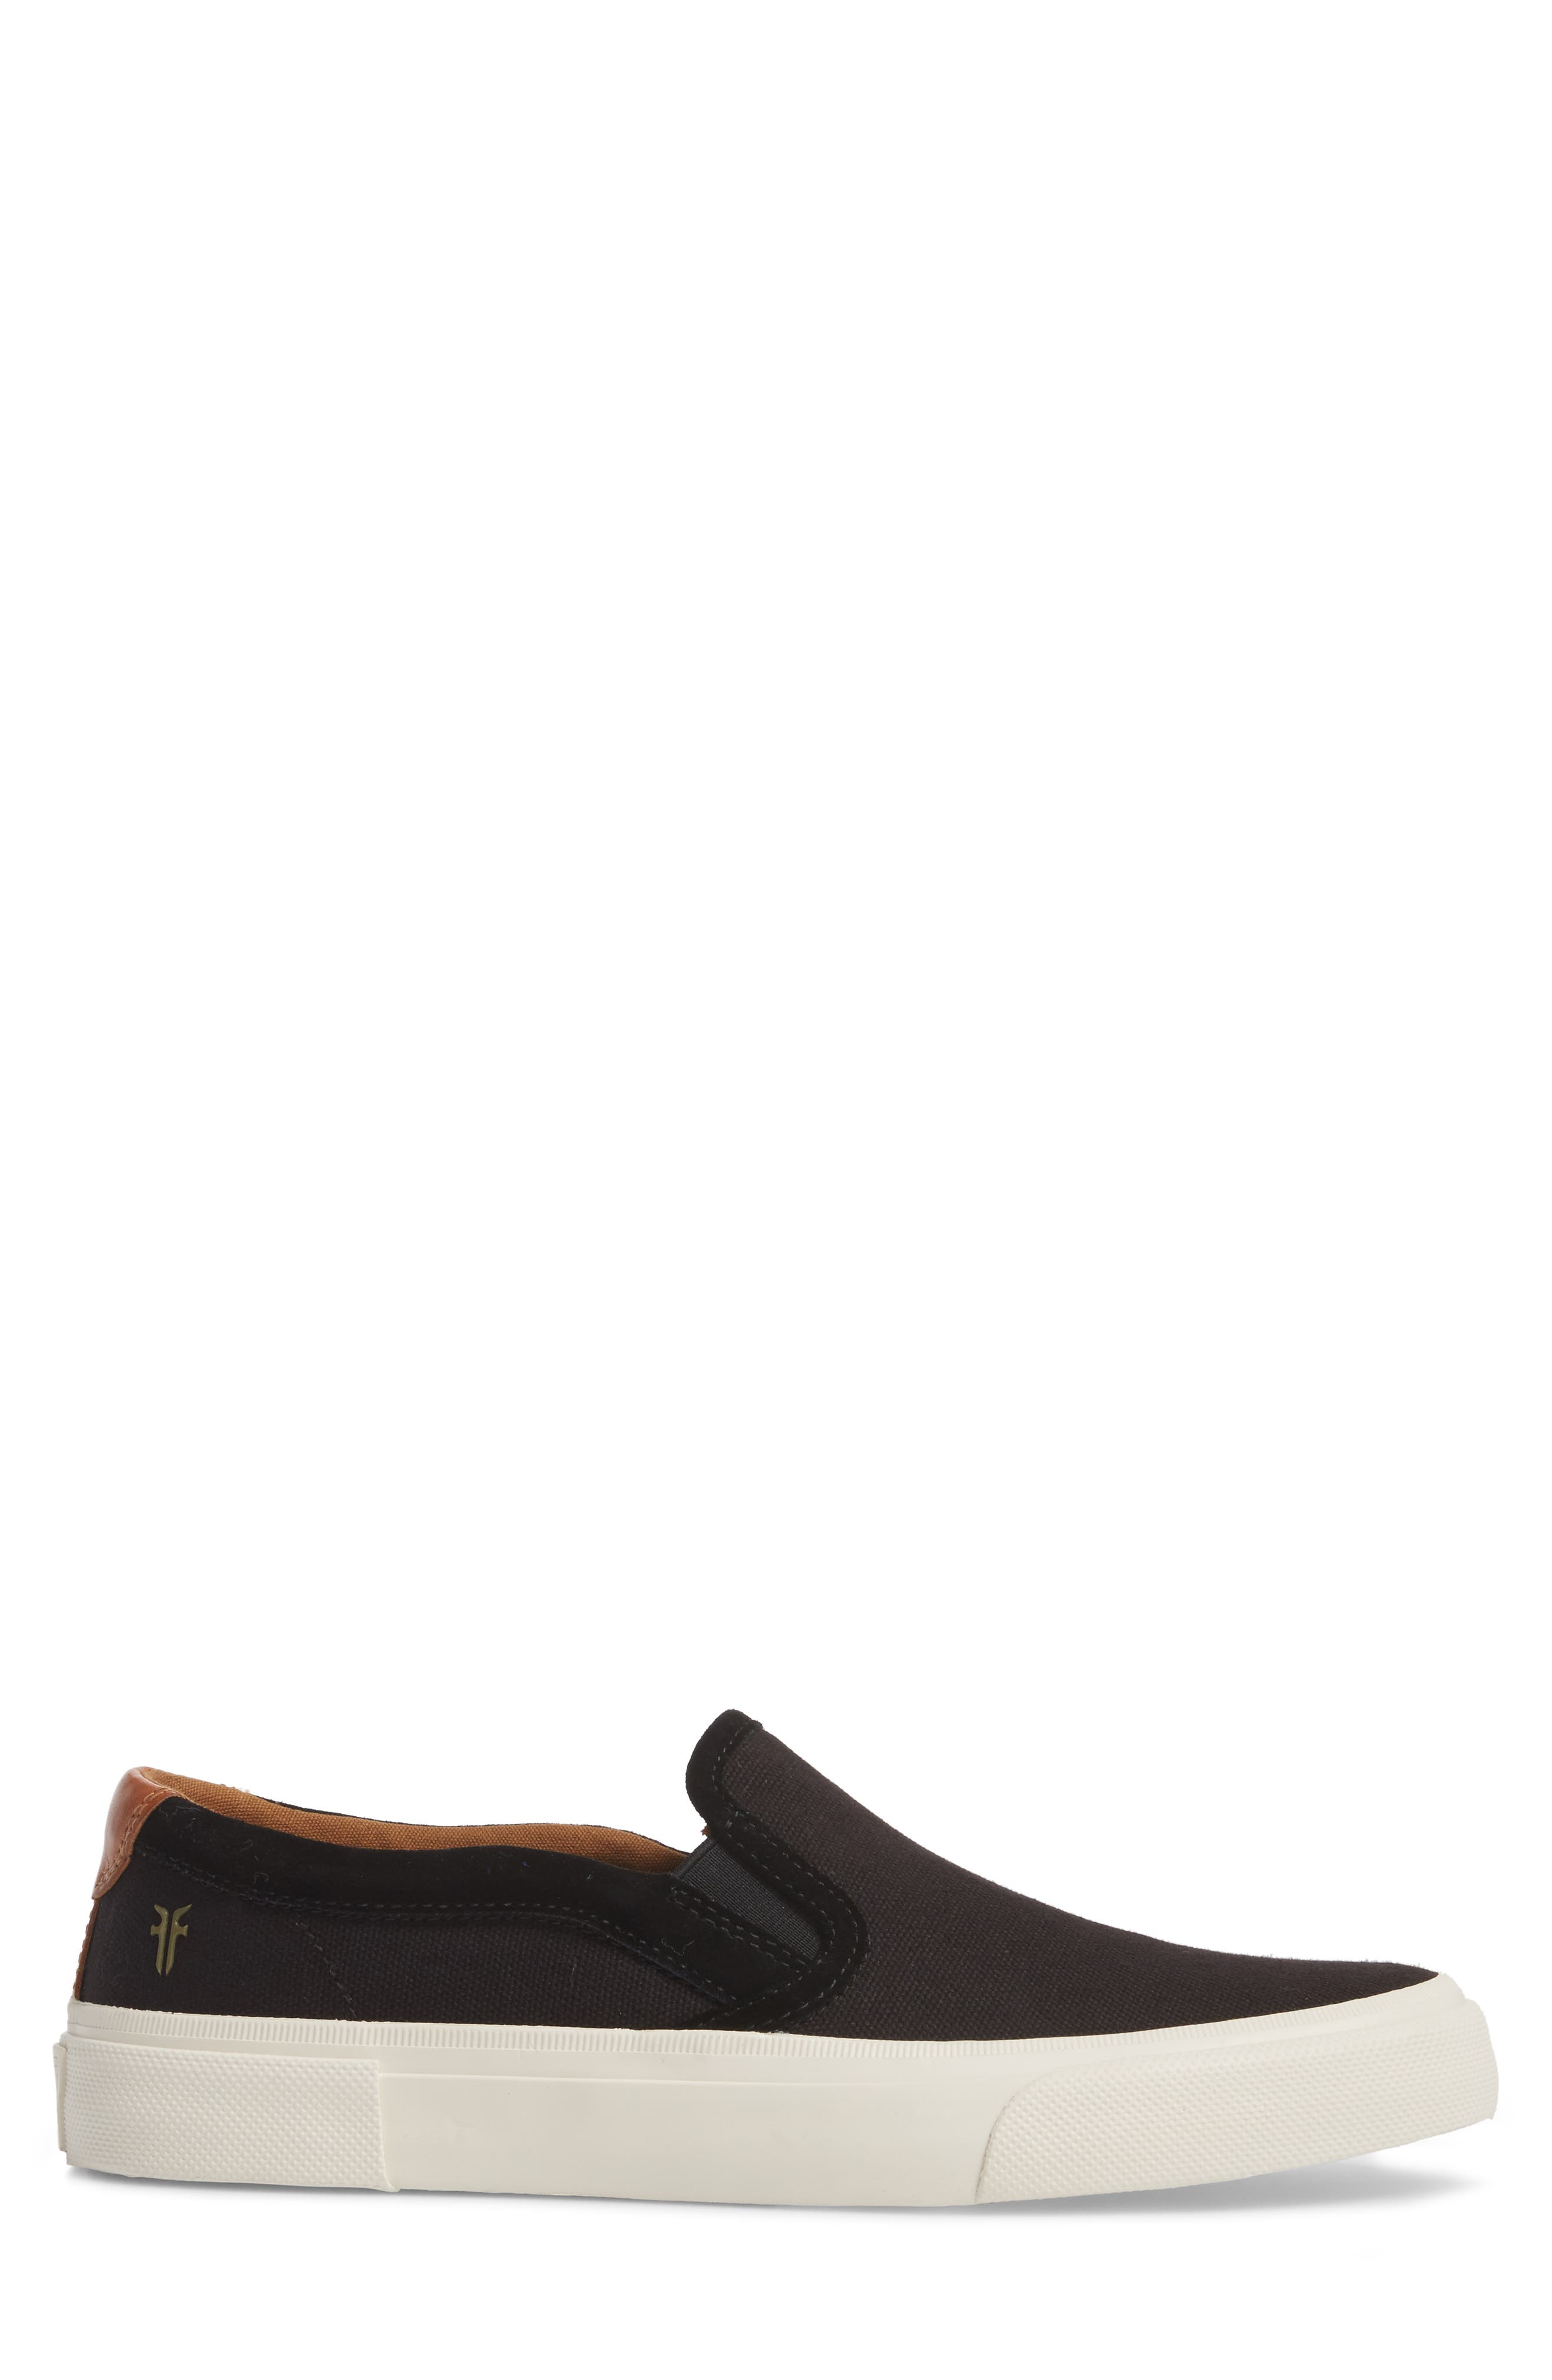 Ludlow Slip-On,                             Alternate thumbnail 3, color,                             001